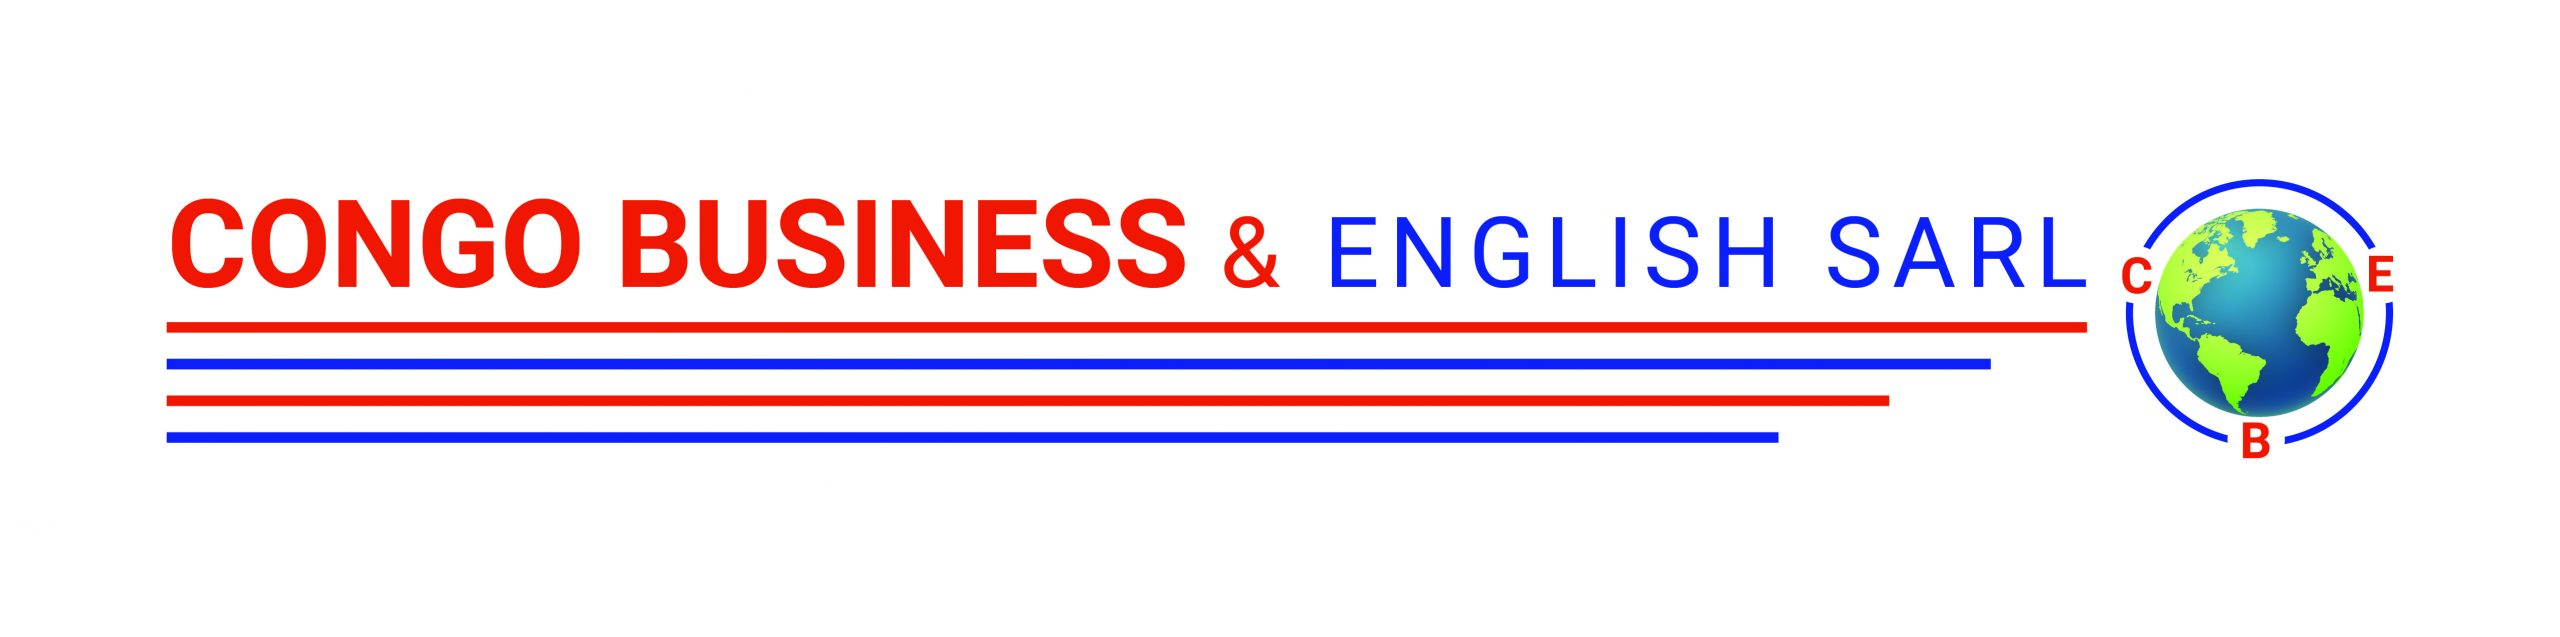 Congo Business and English